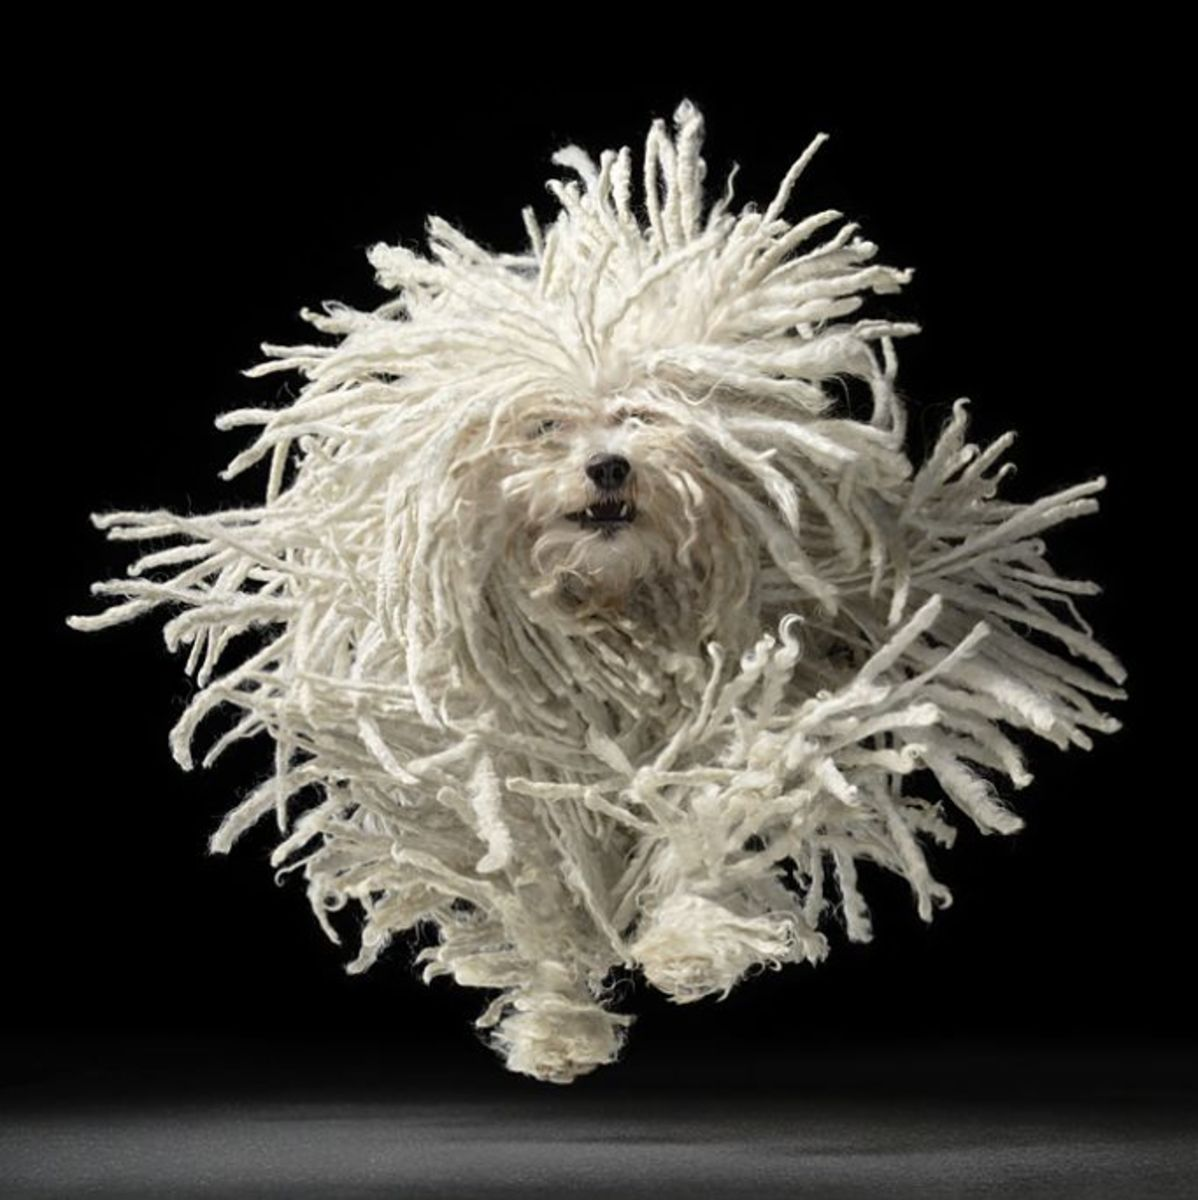 And yet another Tim Flach...